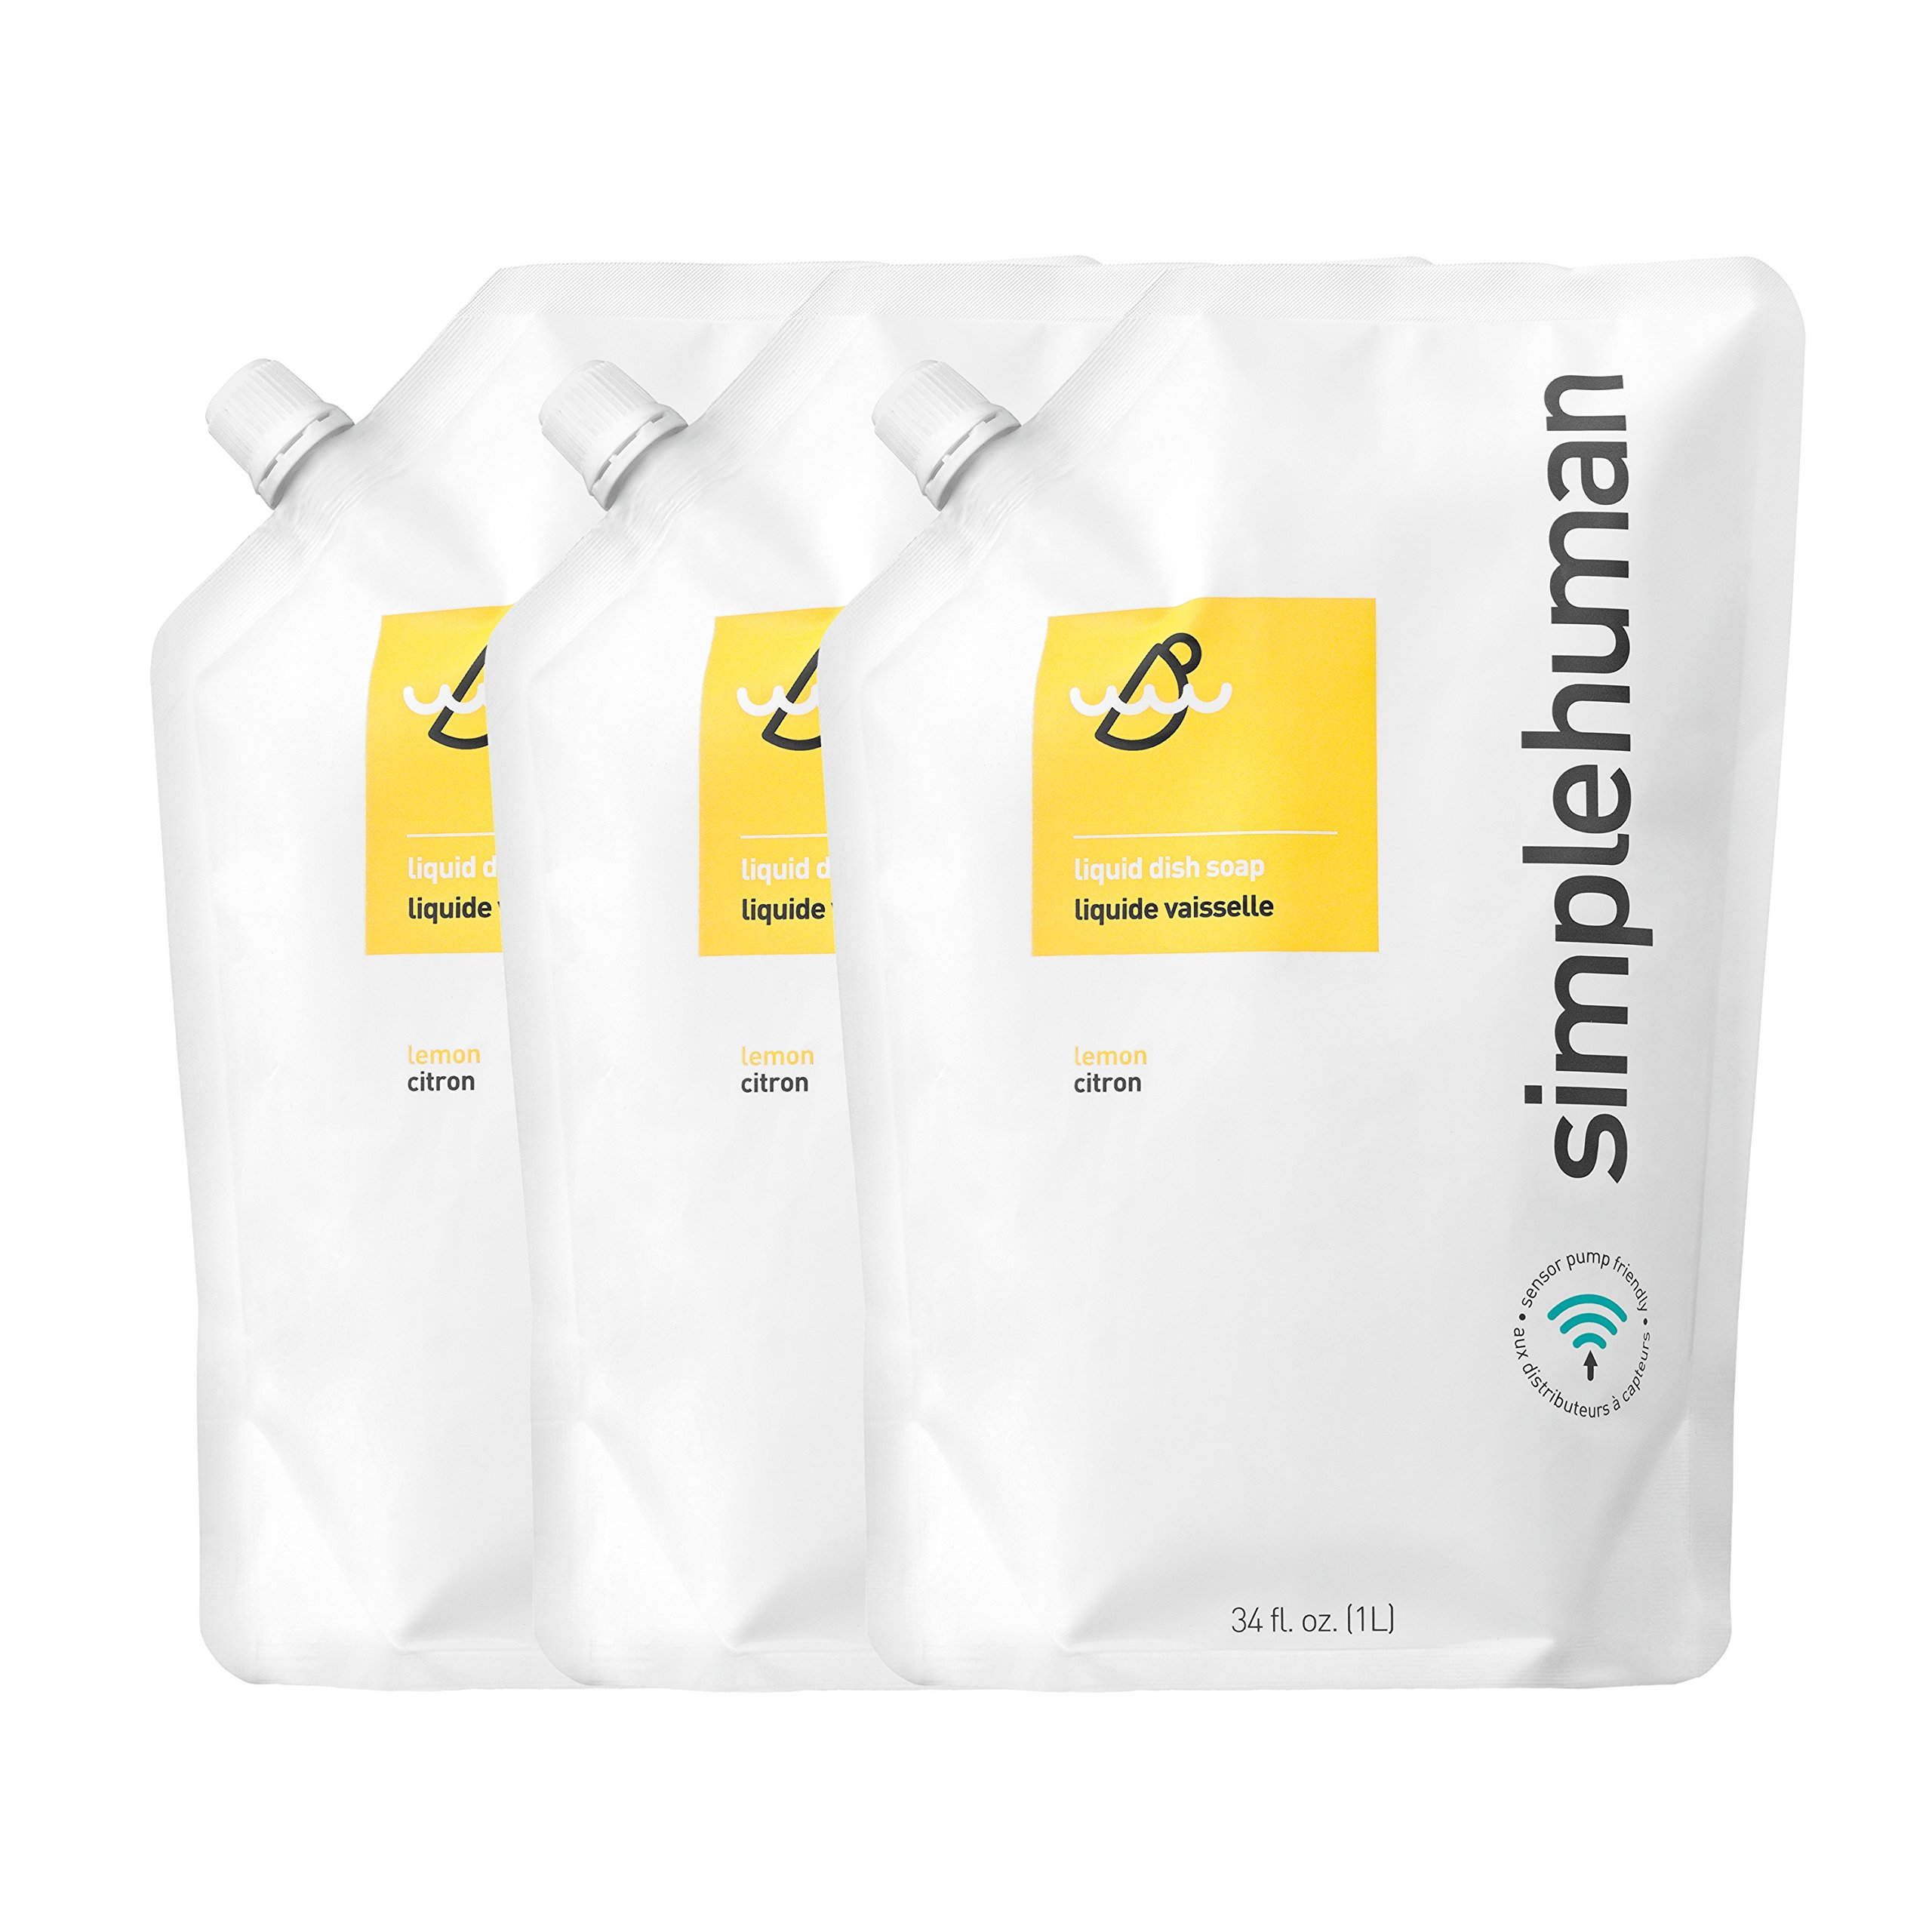 simplehuman Lemon Liquid Dish Soap 34 fl. oz. Refill Pouch (pack of 3) by simplehuman